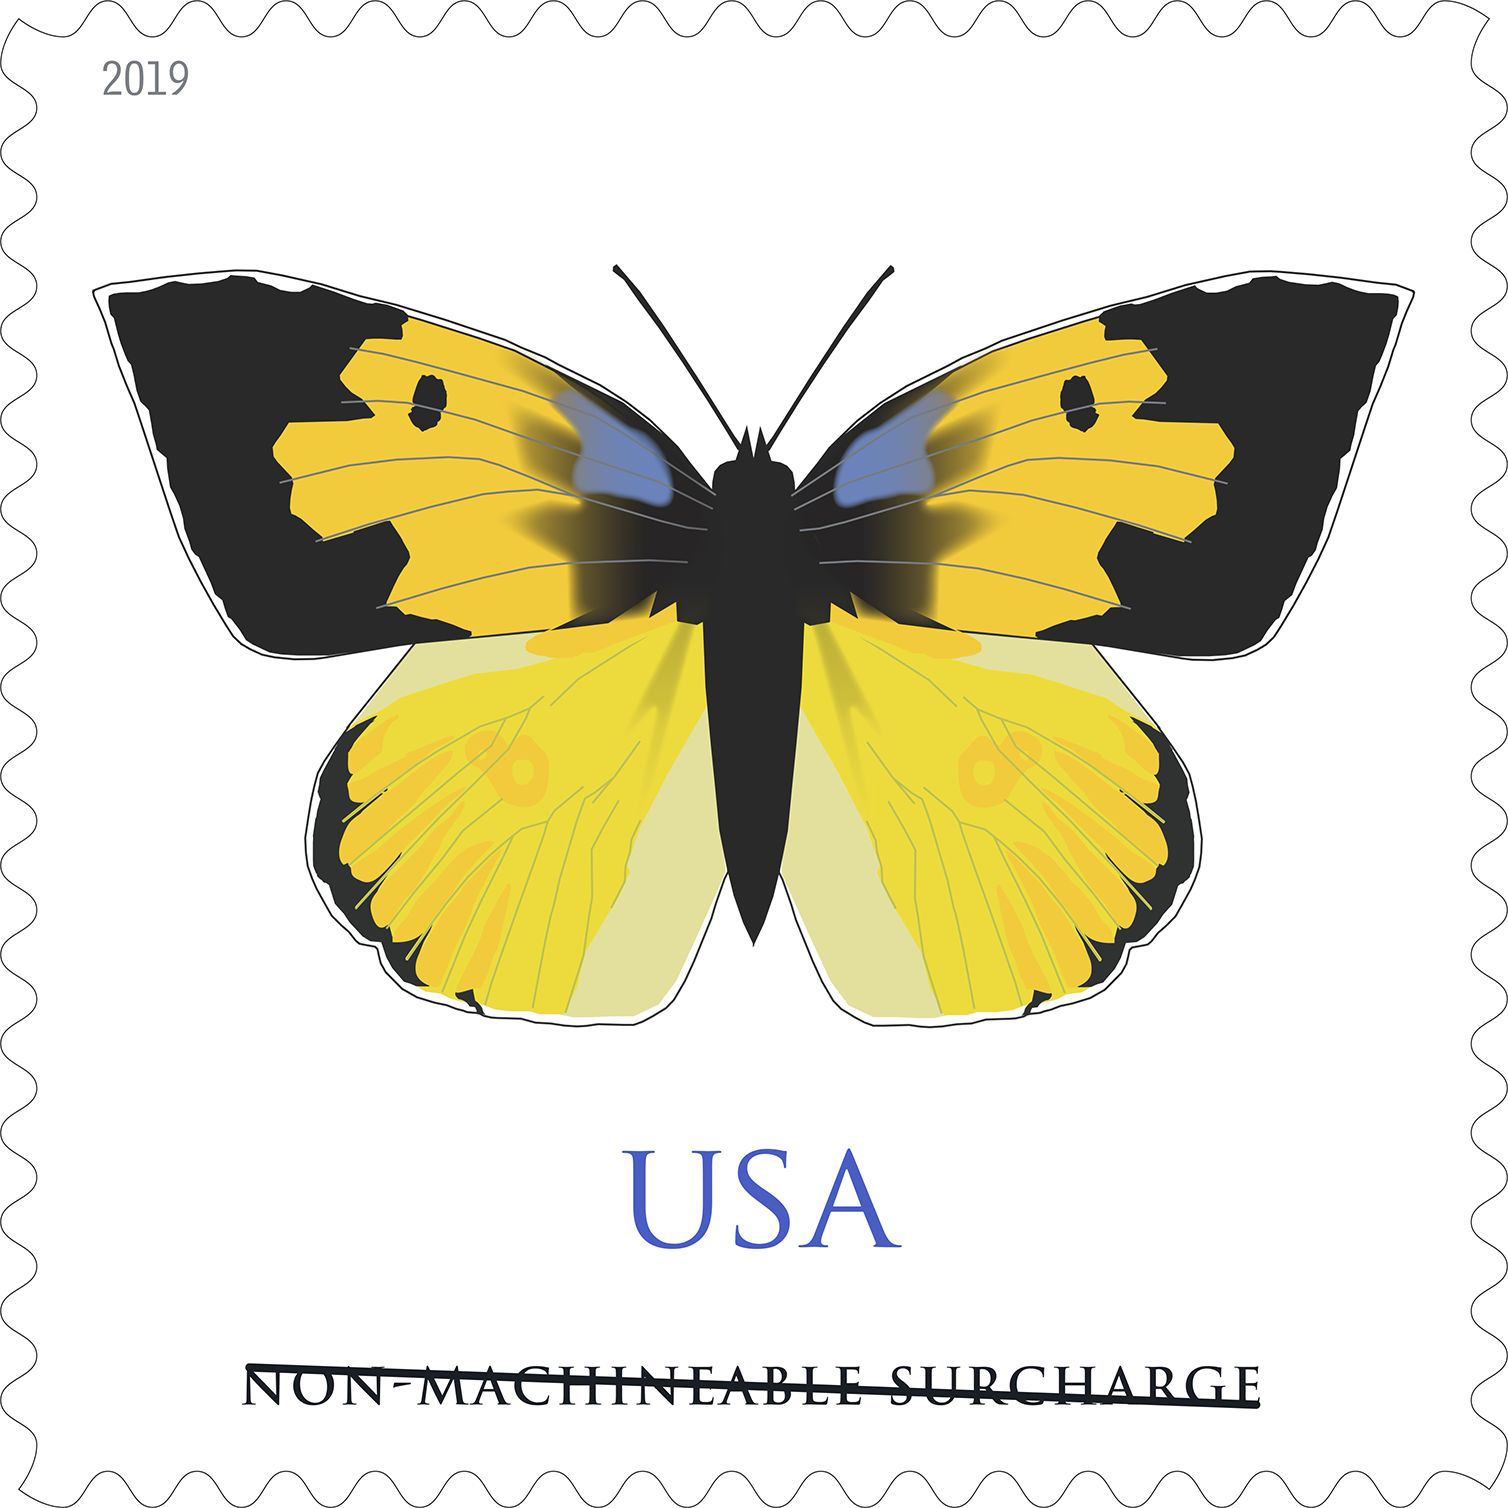 112018_blog-california-dogface-butterfly-USPS19STA024A